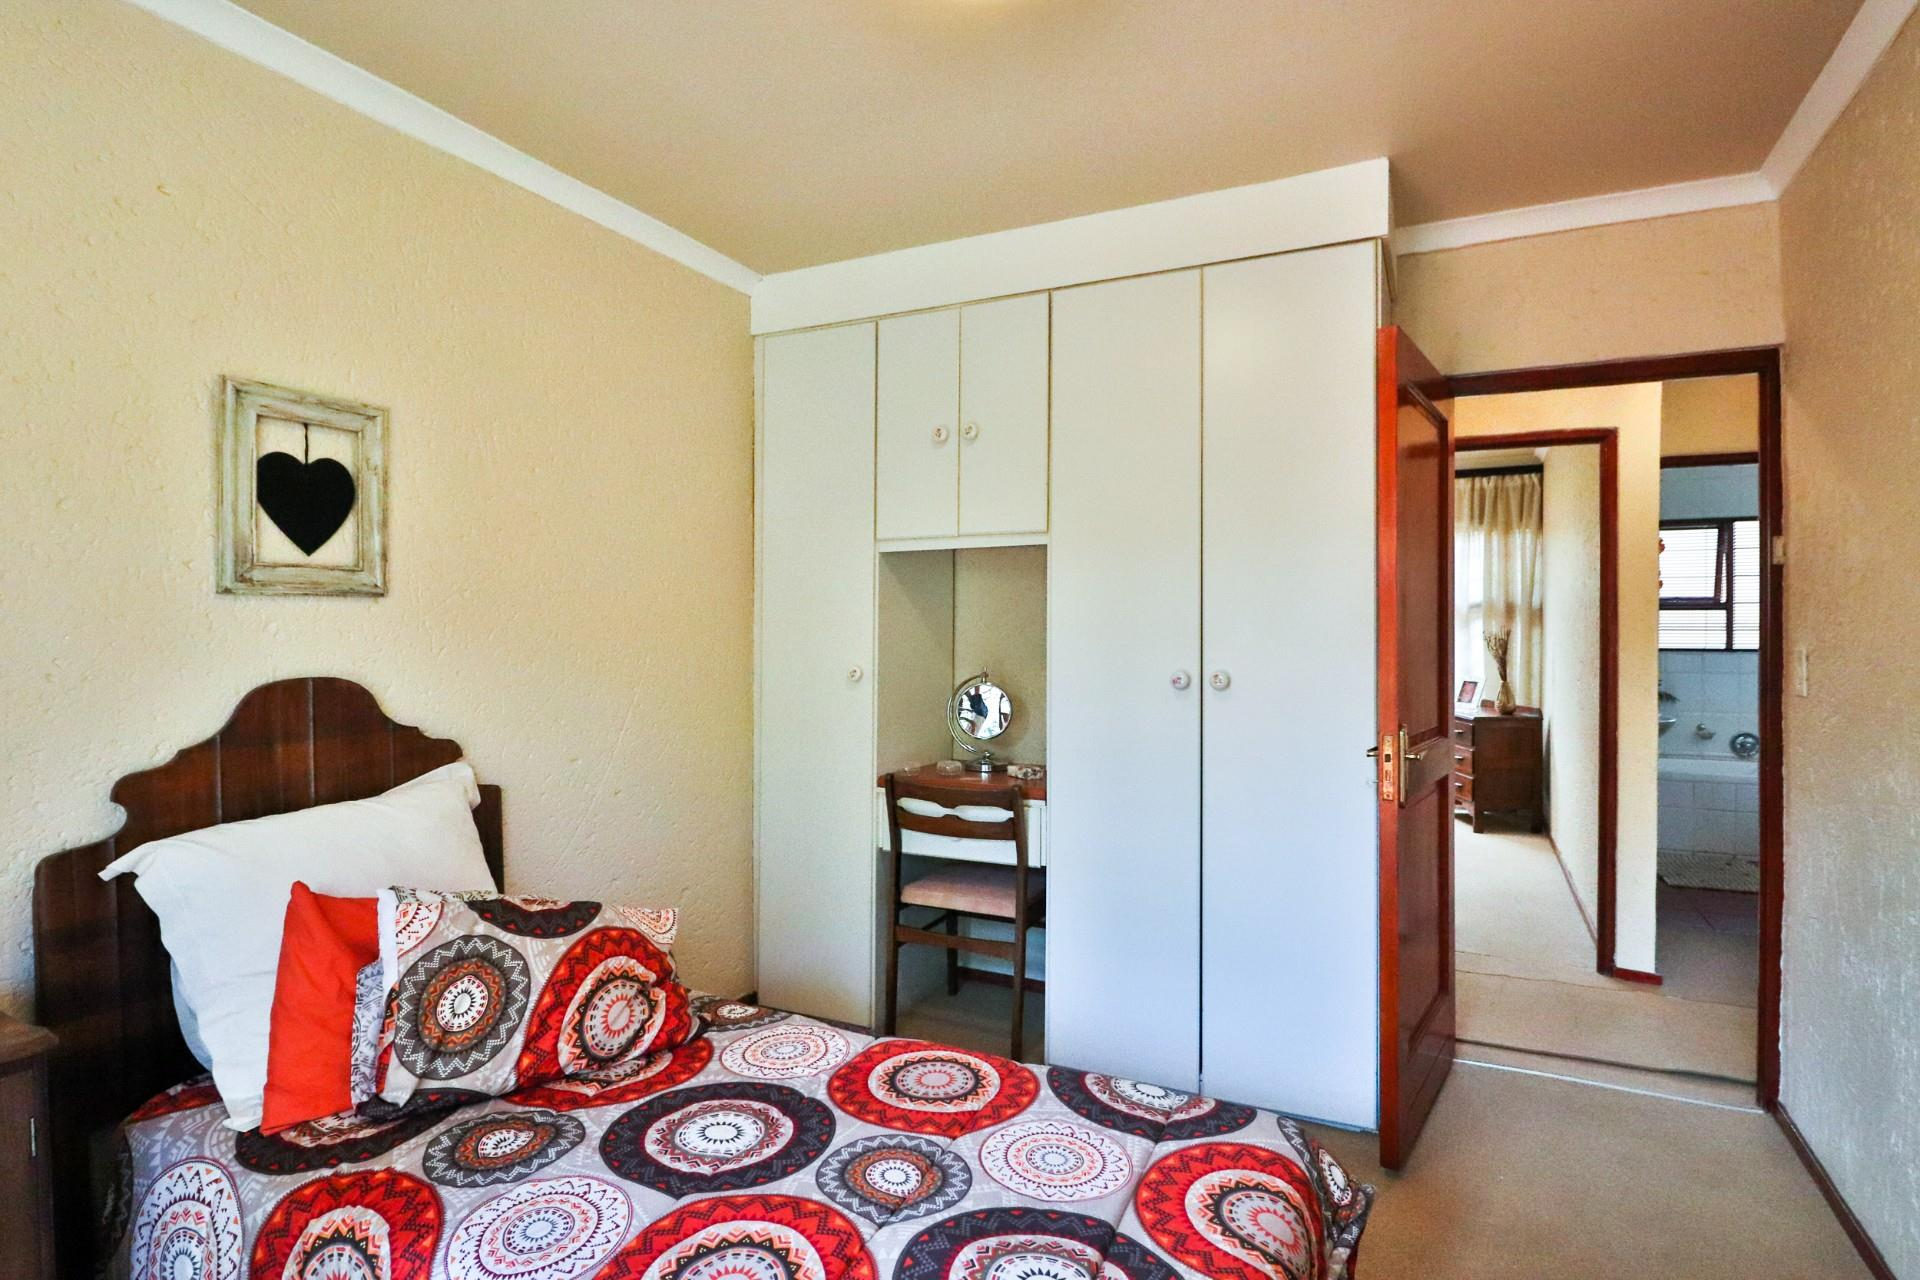 3 Bedroom Townhouse For Sale in Northcliff